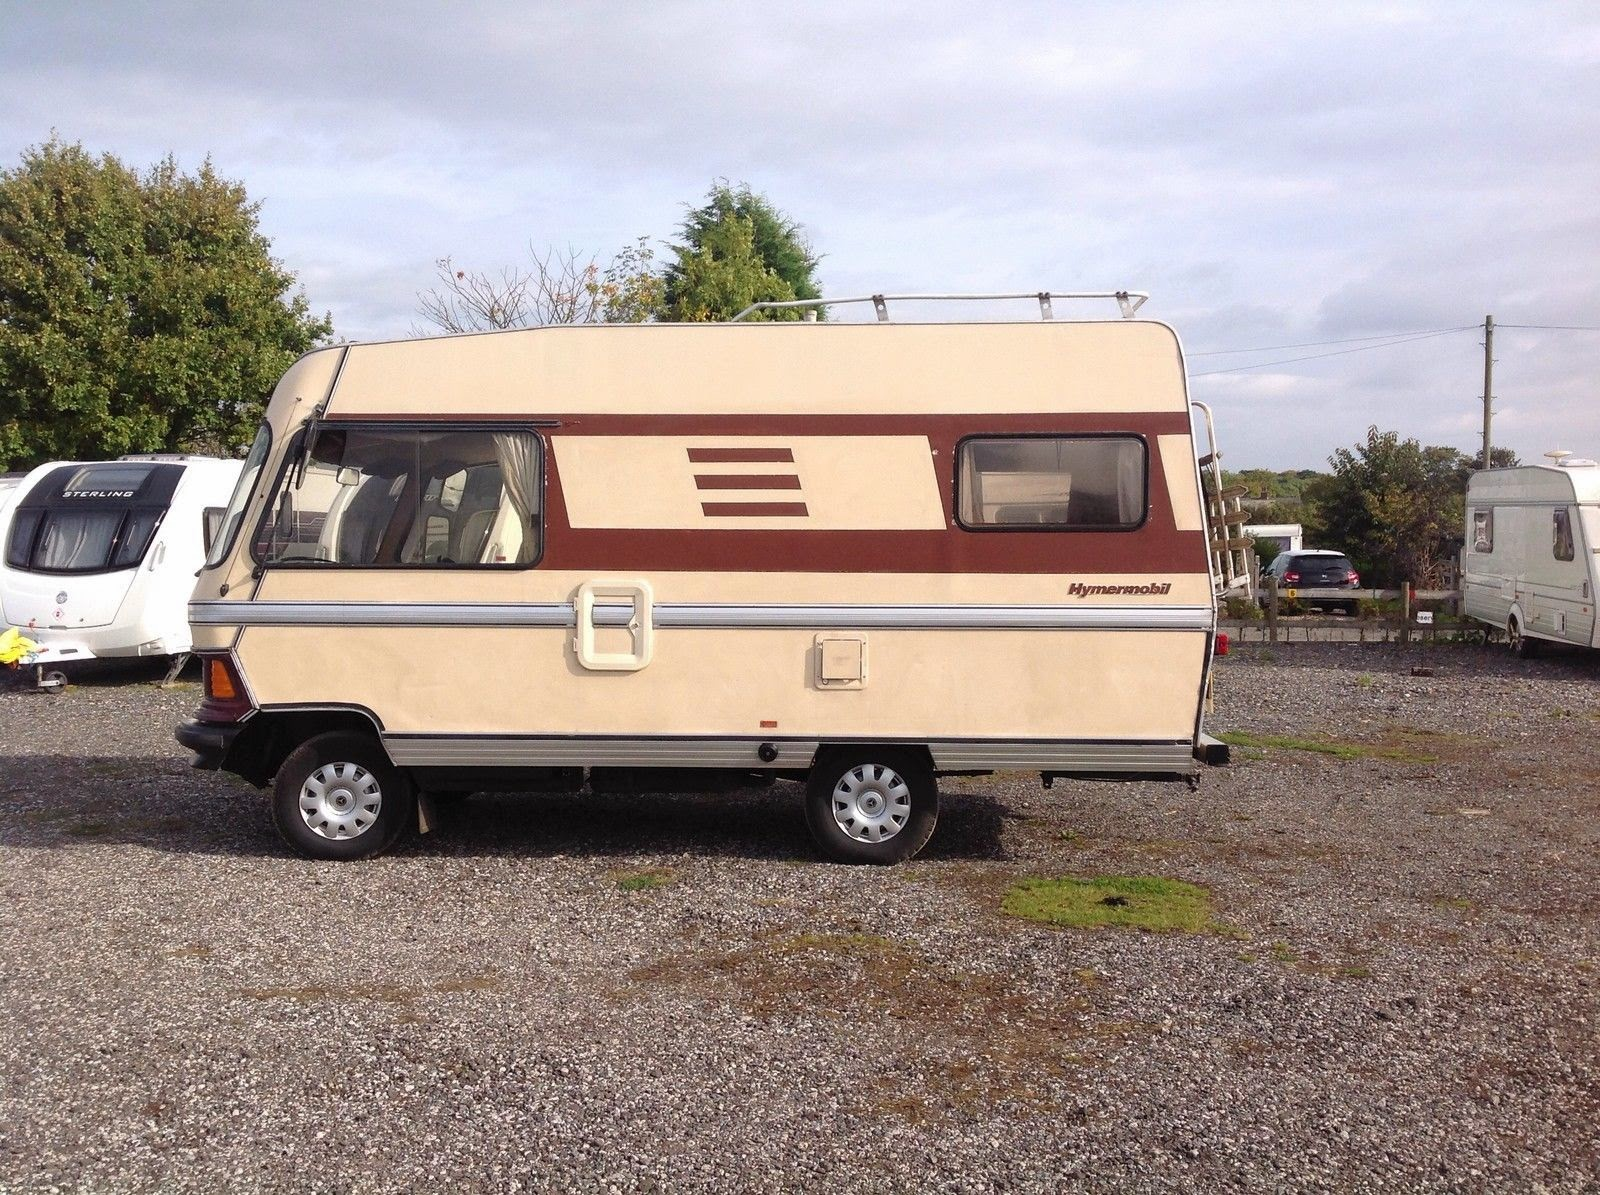 used rvs 1983 hymer motorhome for sale for sale by owner. Black Bedroom Furniture Sets. Home Design Ideas